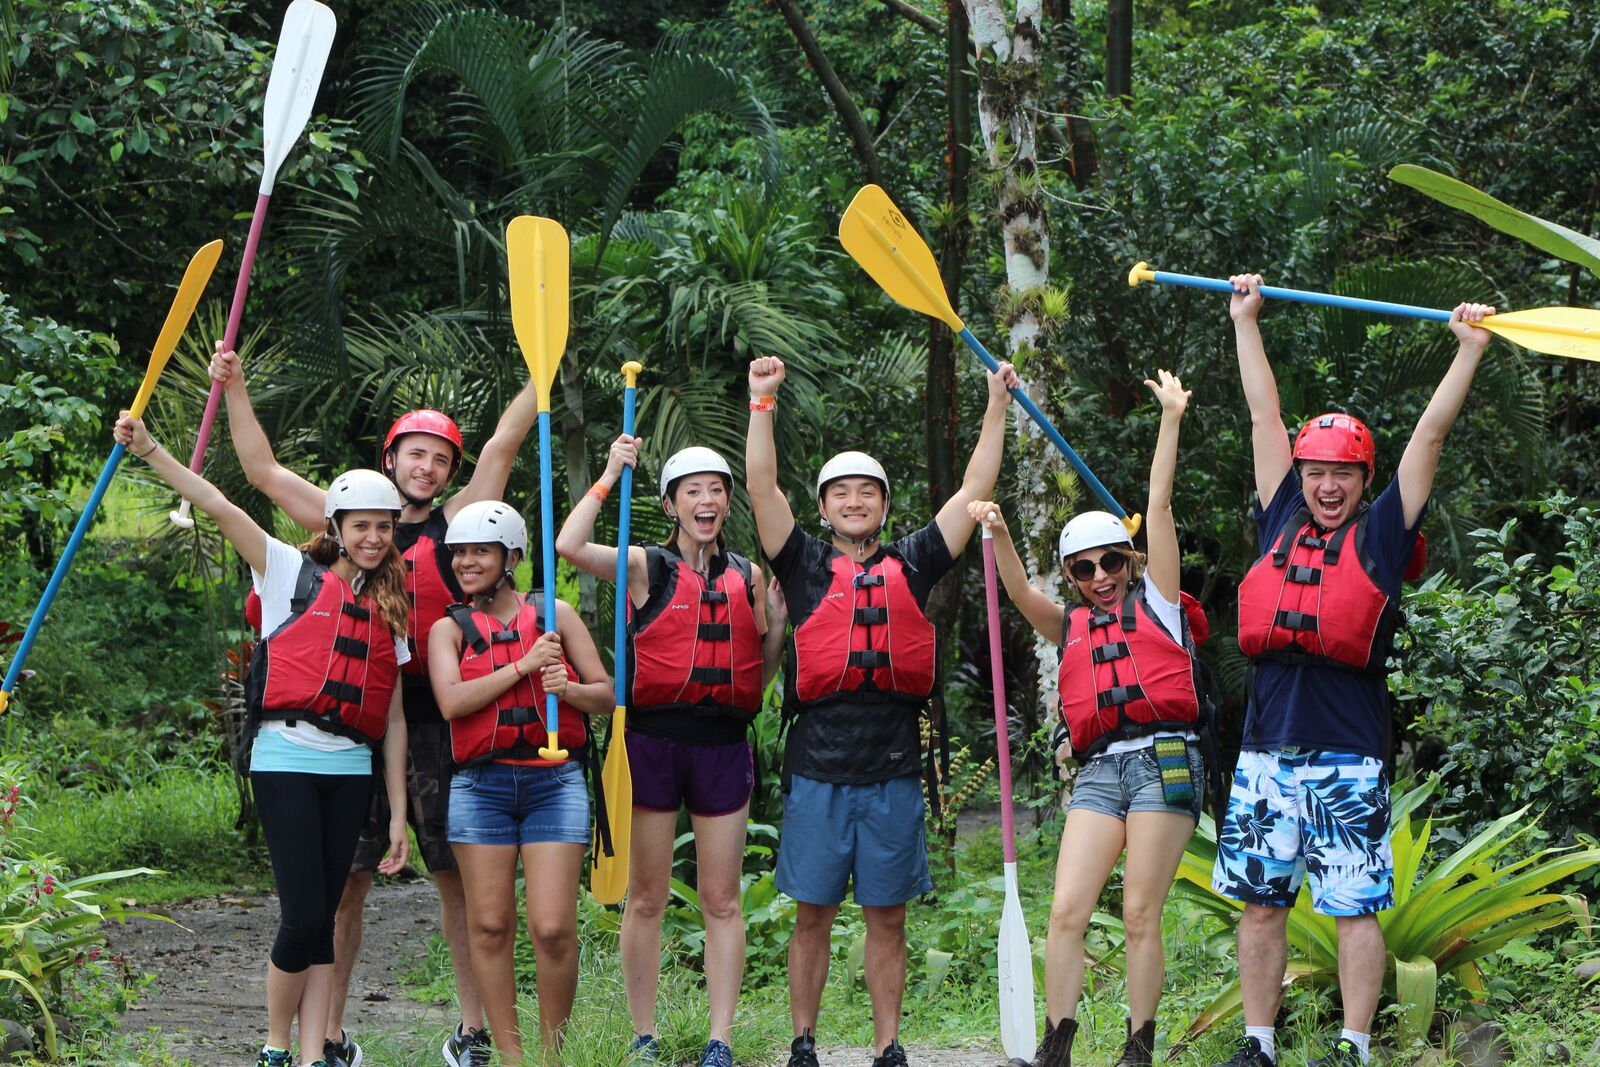 urn your day of travel into an action packed adventure from the Arenal Volcano to the beaches of Manuel Antonio!